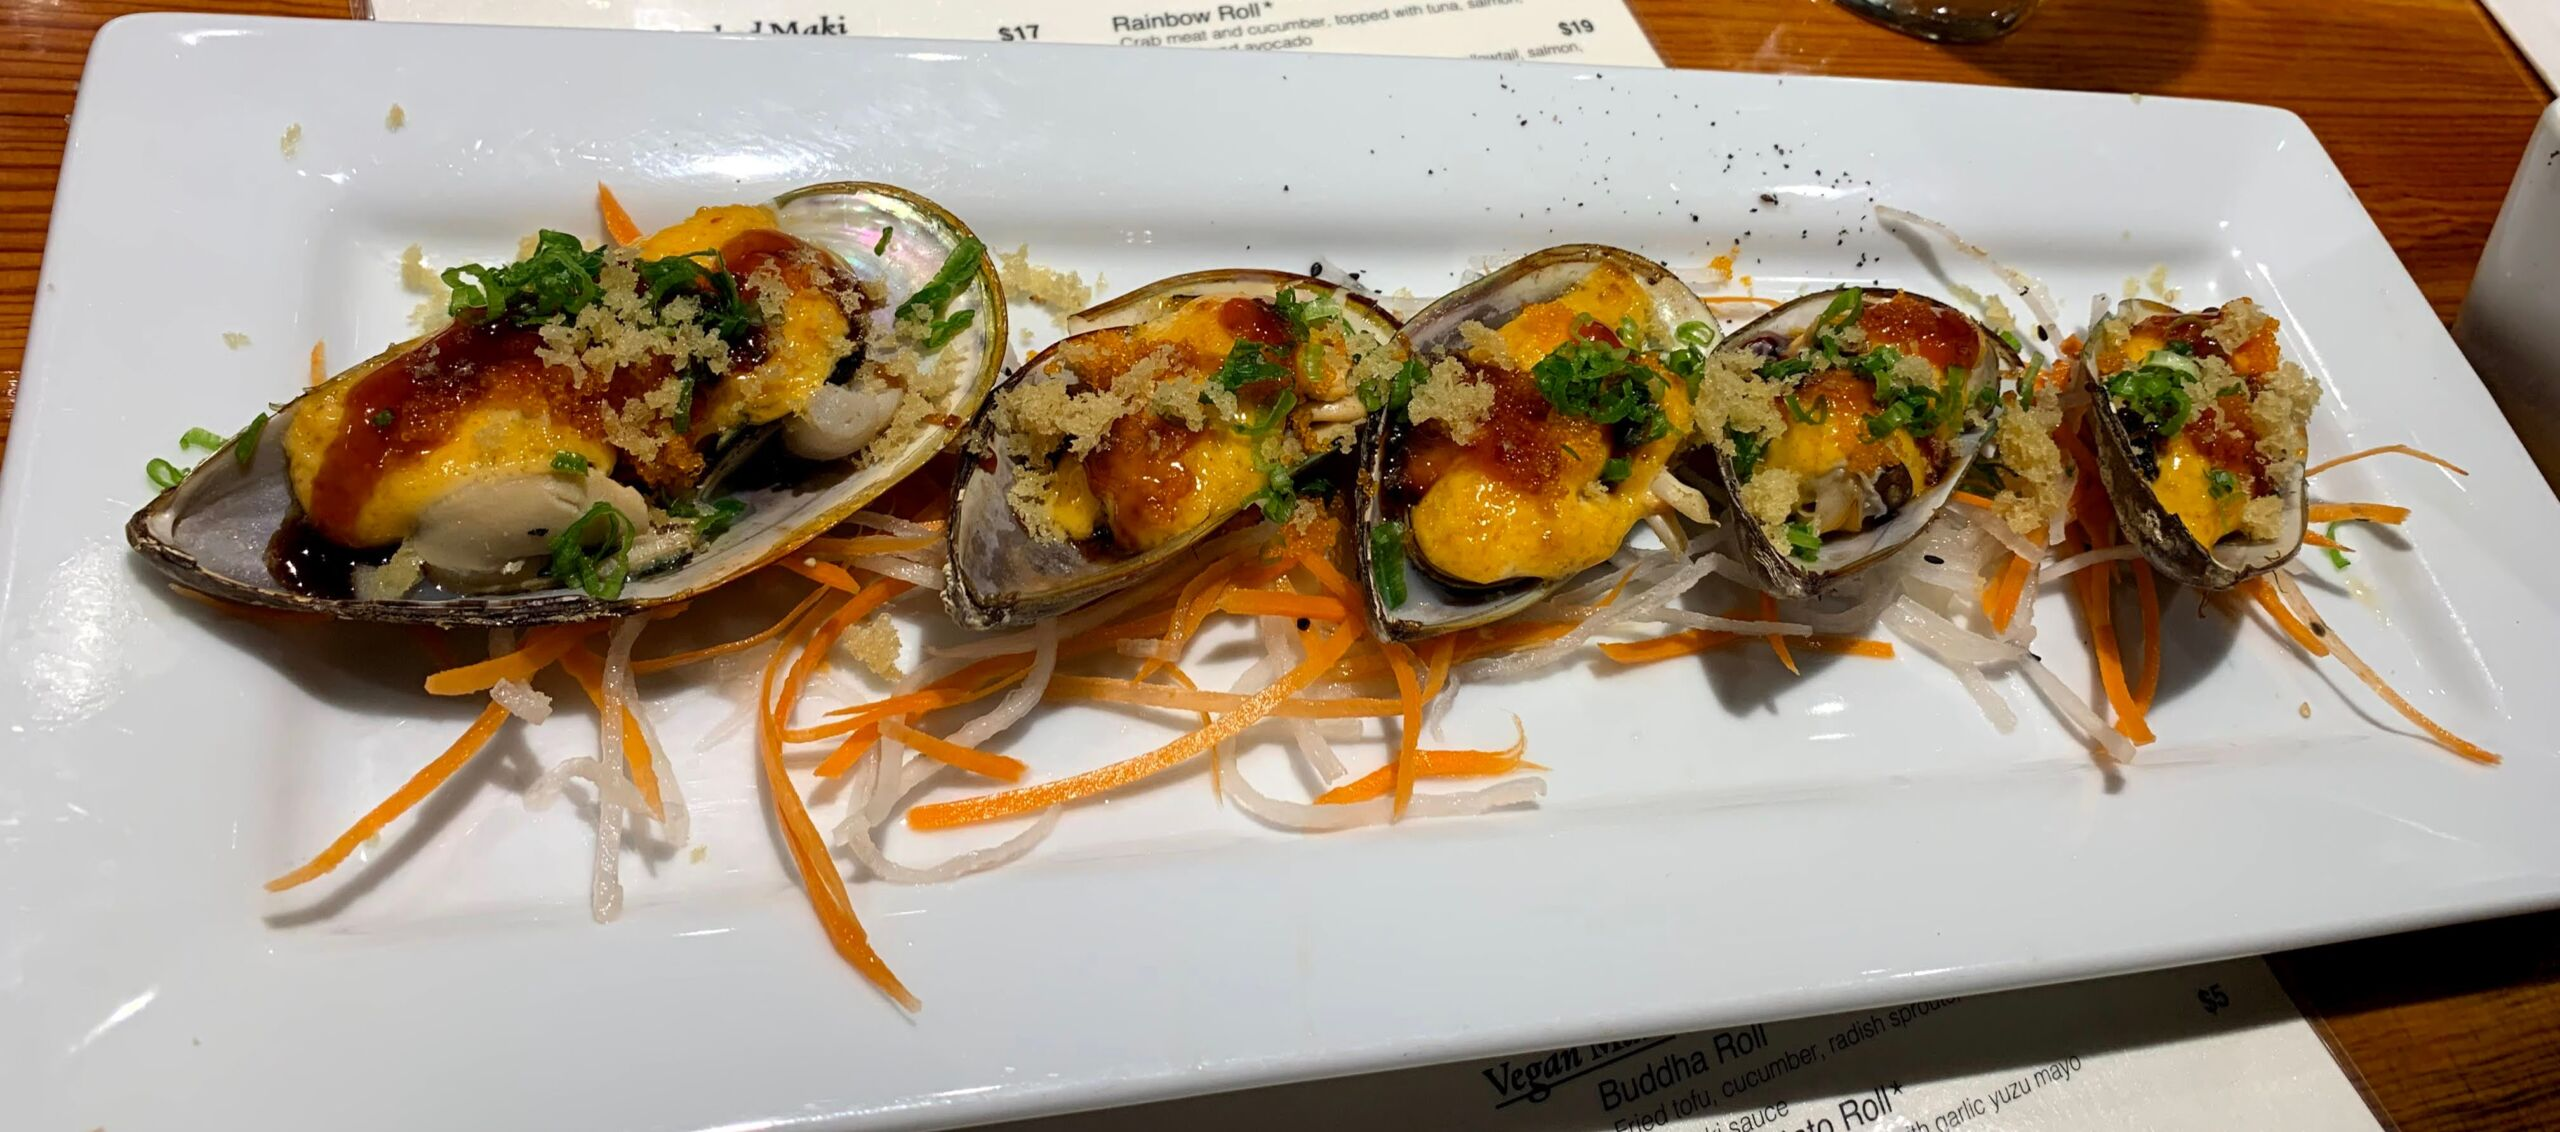 Can you really get good sushi in Kalispell MT? photo of green mussels